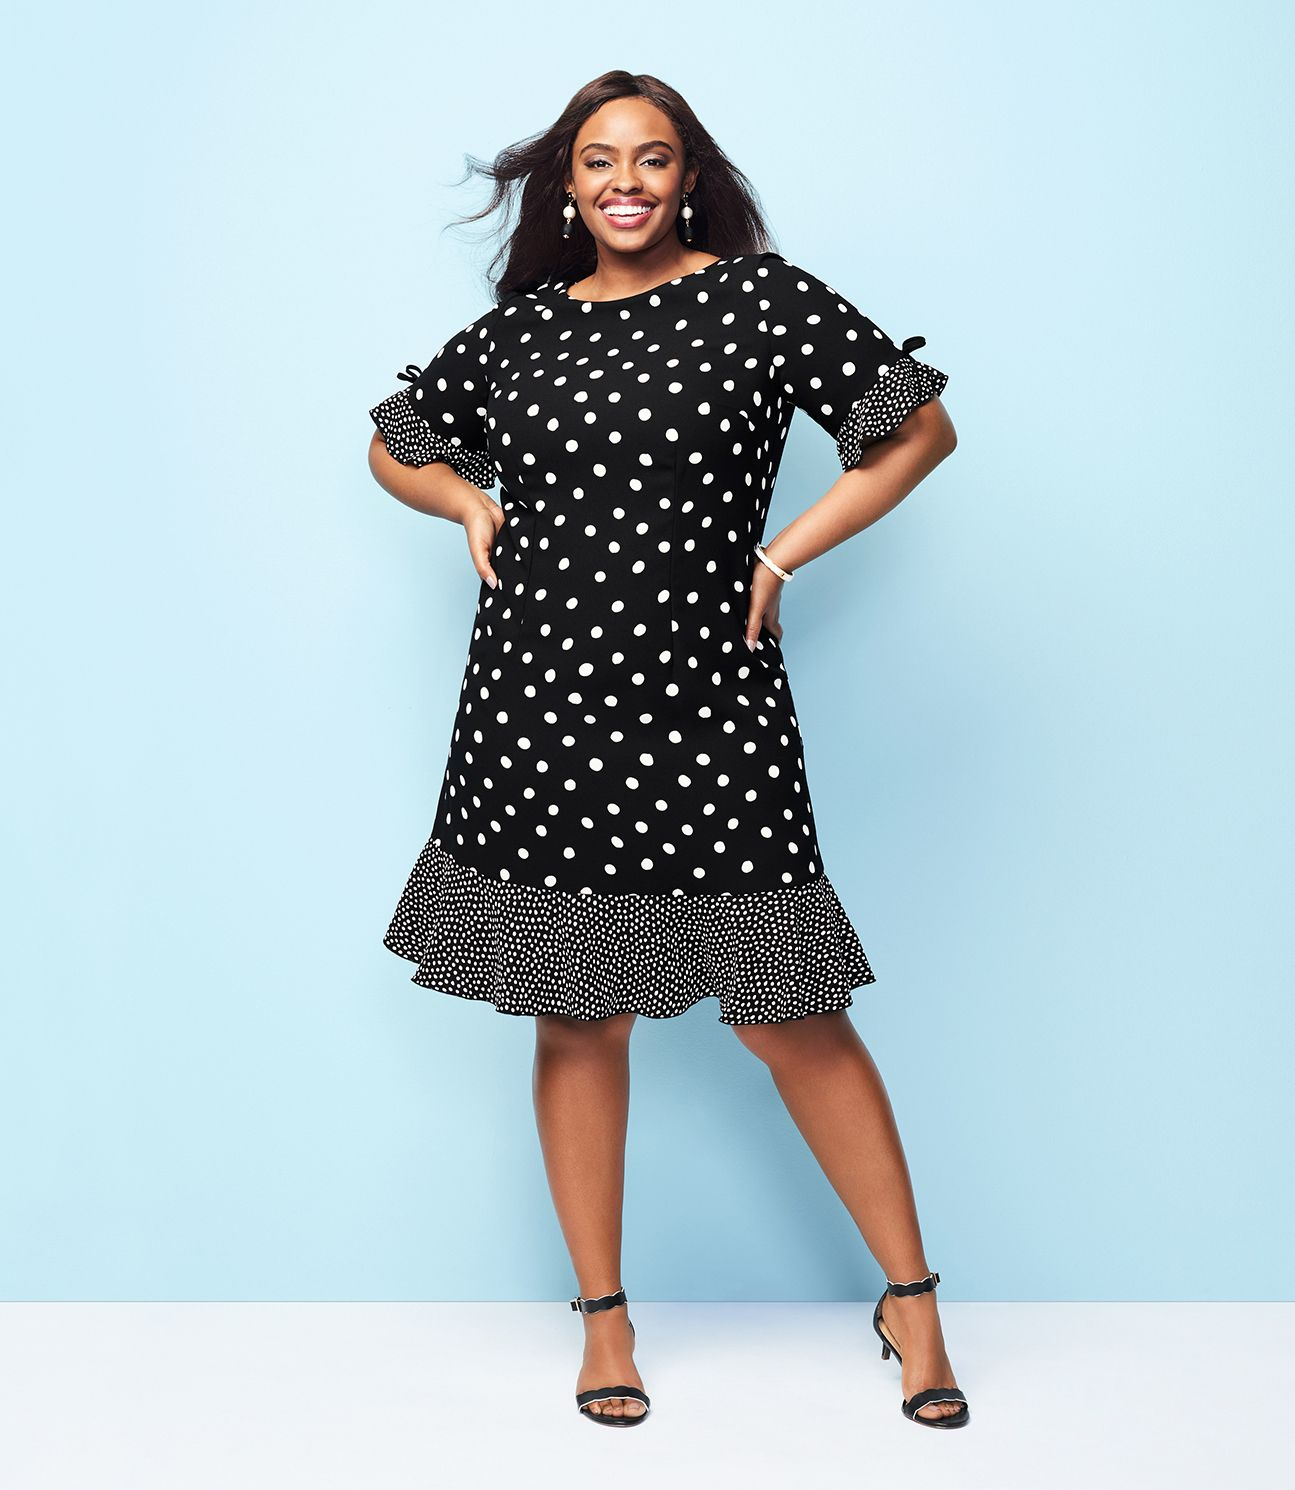 Dazzling In Dots This Modern Shift Dress Is Both Stylish And Fun Flounce In The Sleeve And At The Hem Give I Fashion Classy Clothes For Women Talbots Fashion [ 1490 x 1295 Pixel ]